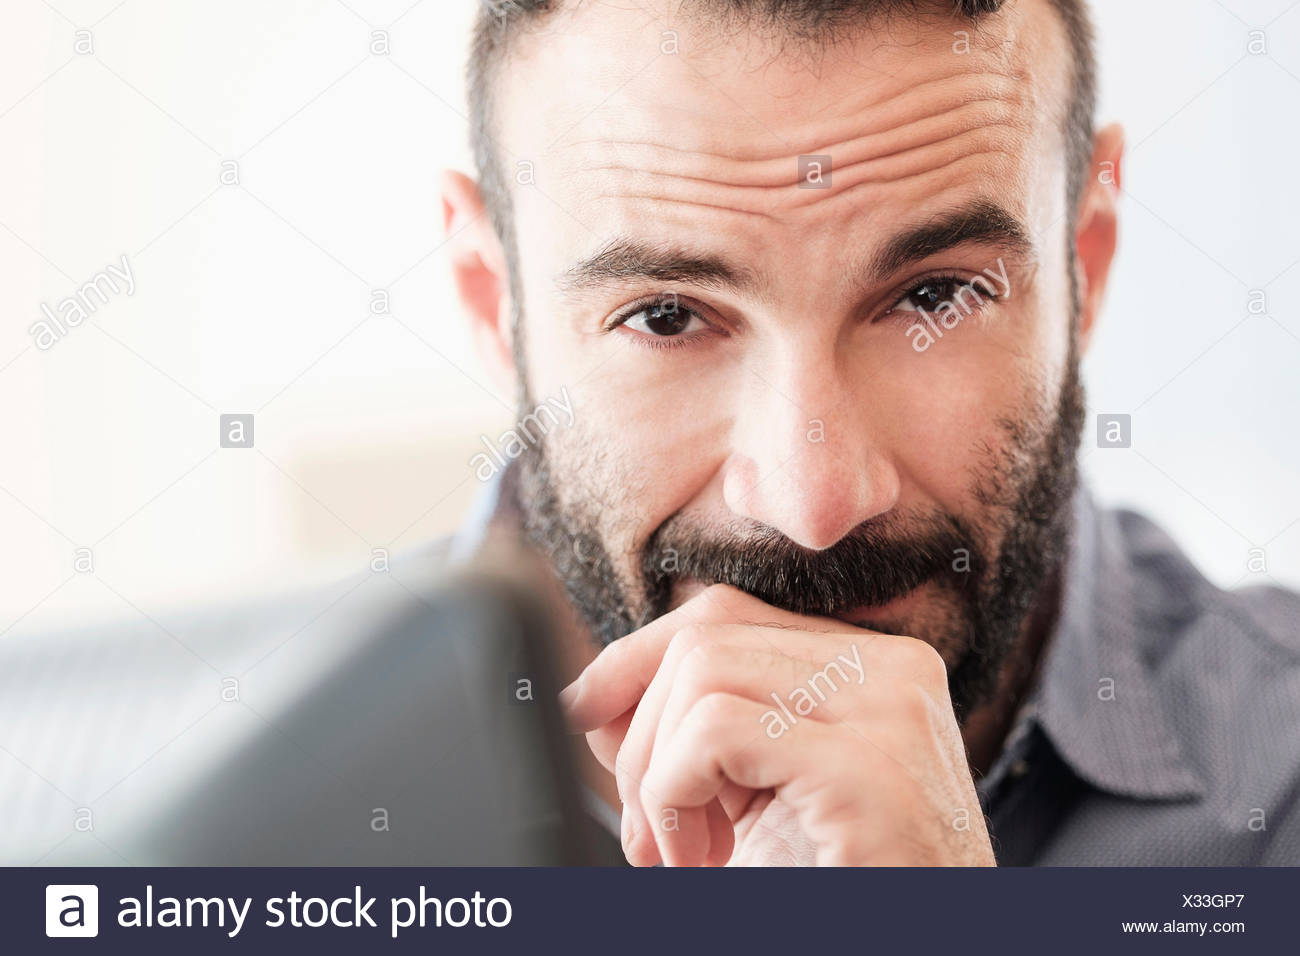 Portrait of mid-adult man Photo Stock